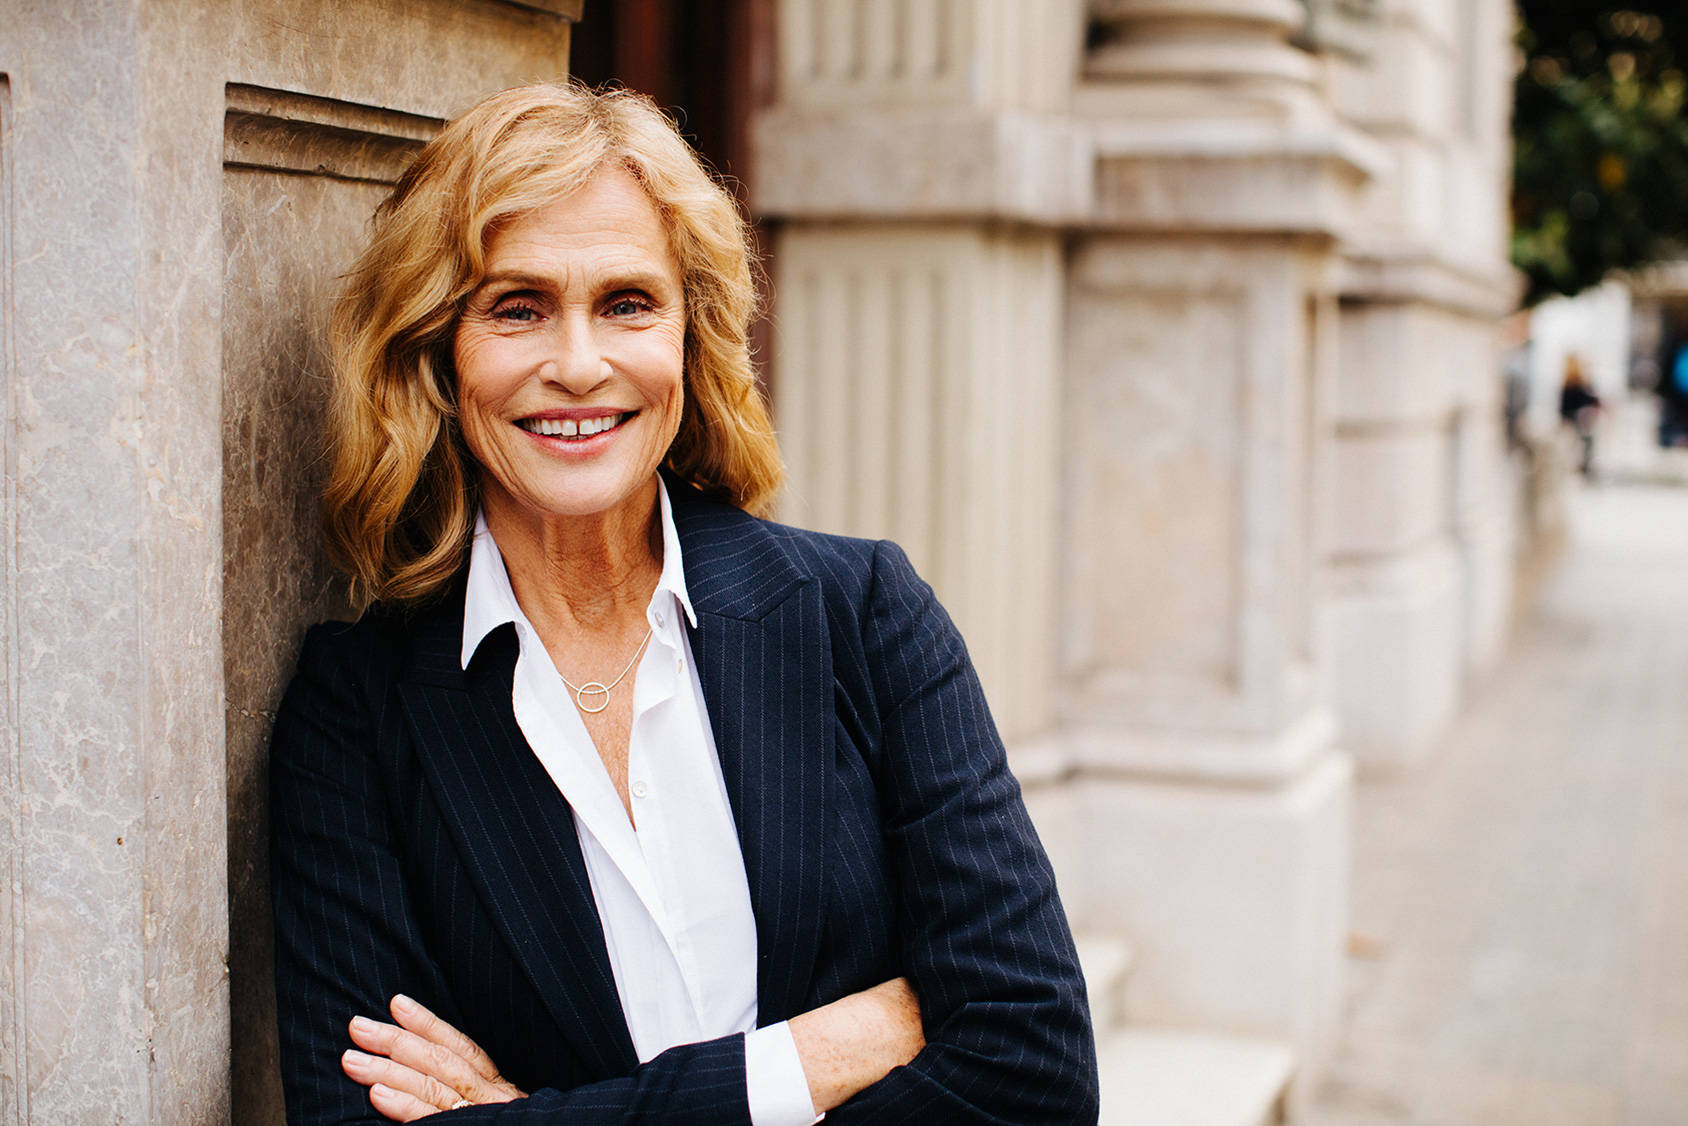 LAUREN HUTTON IS STILL HOPEFUL